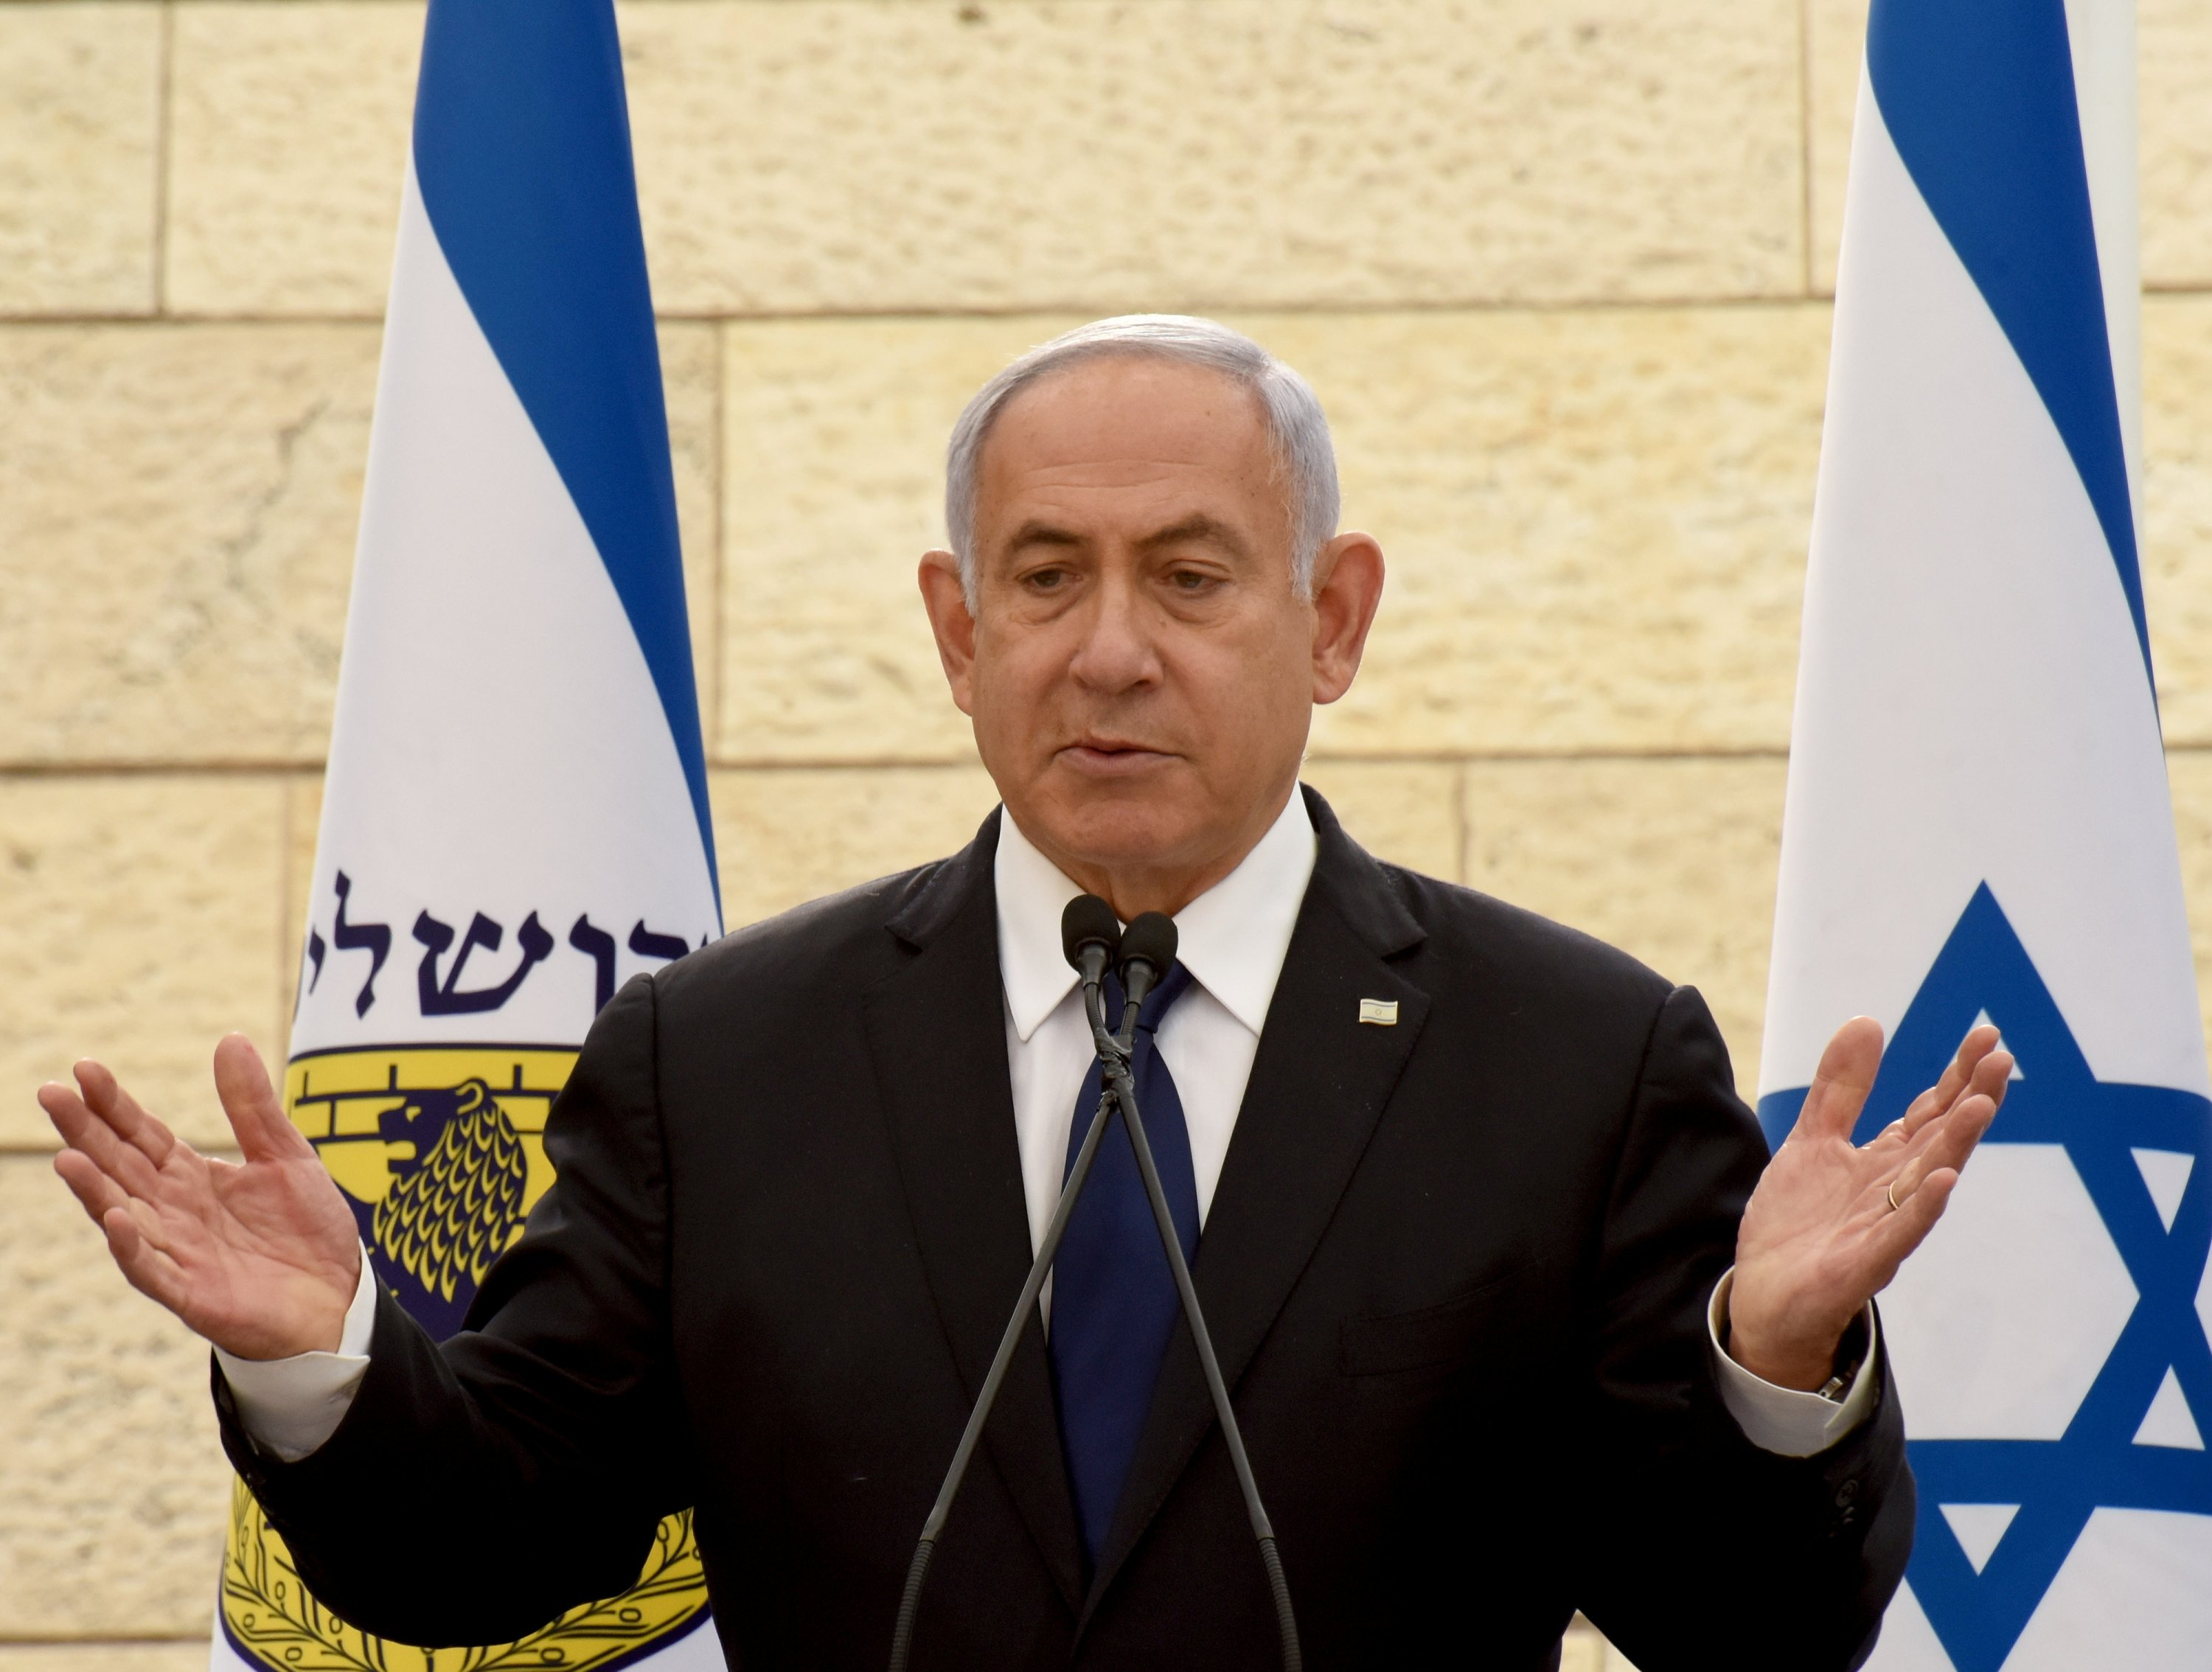 Israeli Prime Minister Benjamin Netanyahu speaks at a ceremony for fallen soldiers of Israel's wars at the Yad Lebanim House on the eve of Memorial Day, in Jerusalem, Israel, April 13, 2021. (REUTERS)